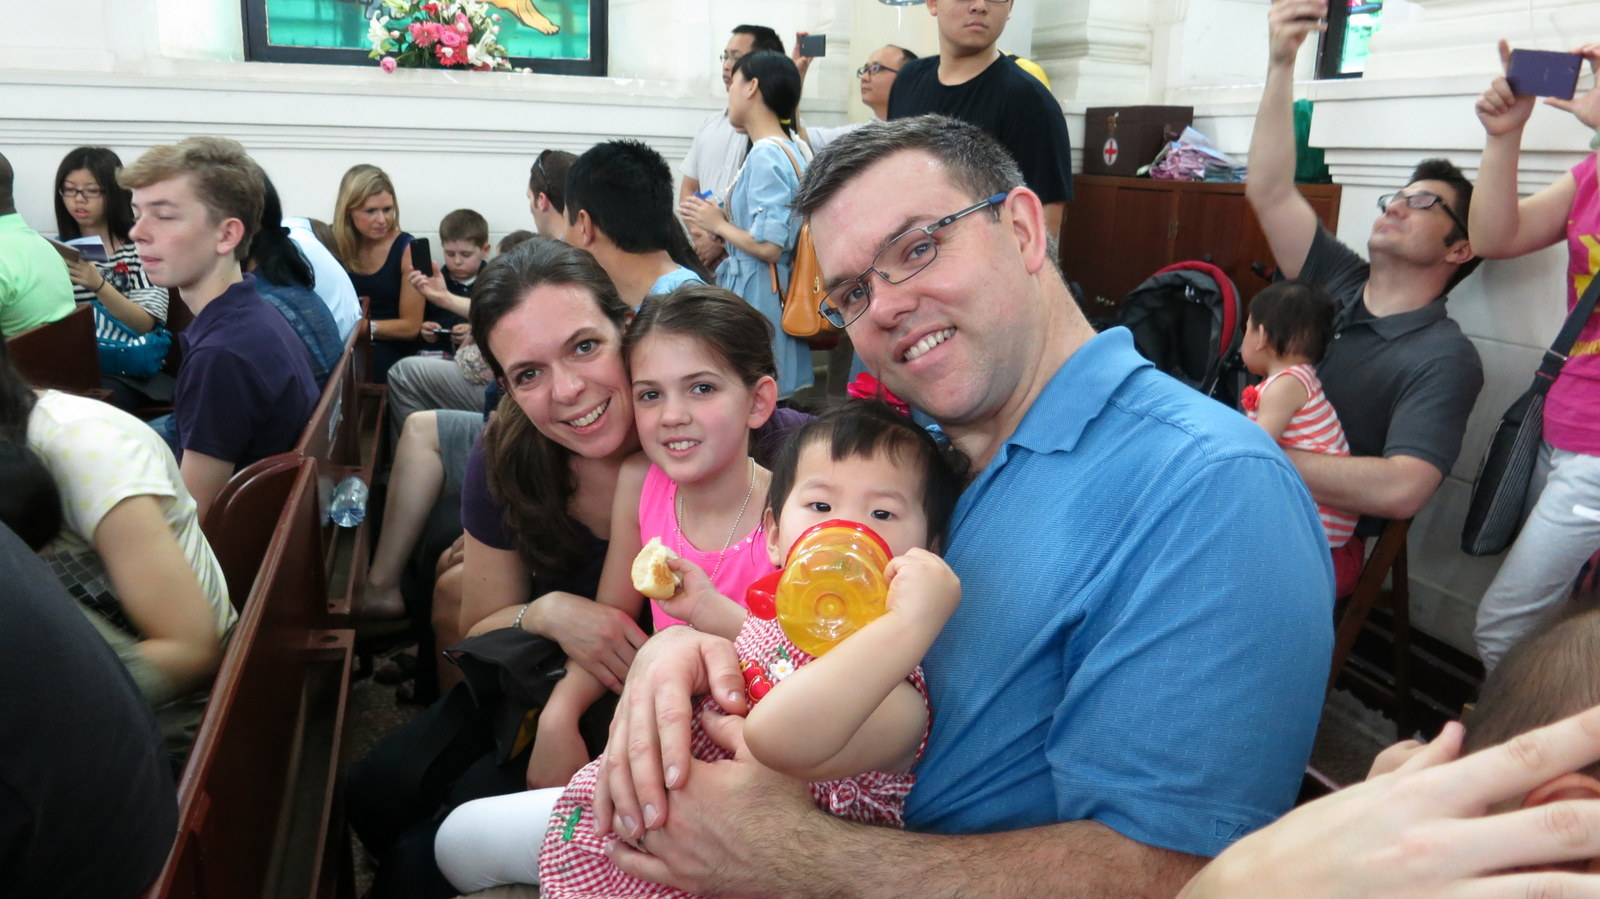 Here we are in church. It was super crowded and bilingual so we were able to worship in English and Mandarin.